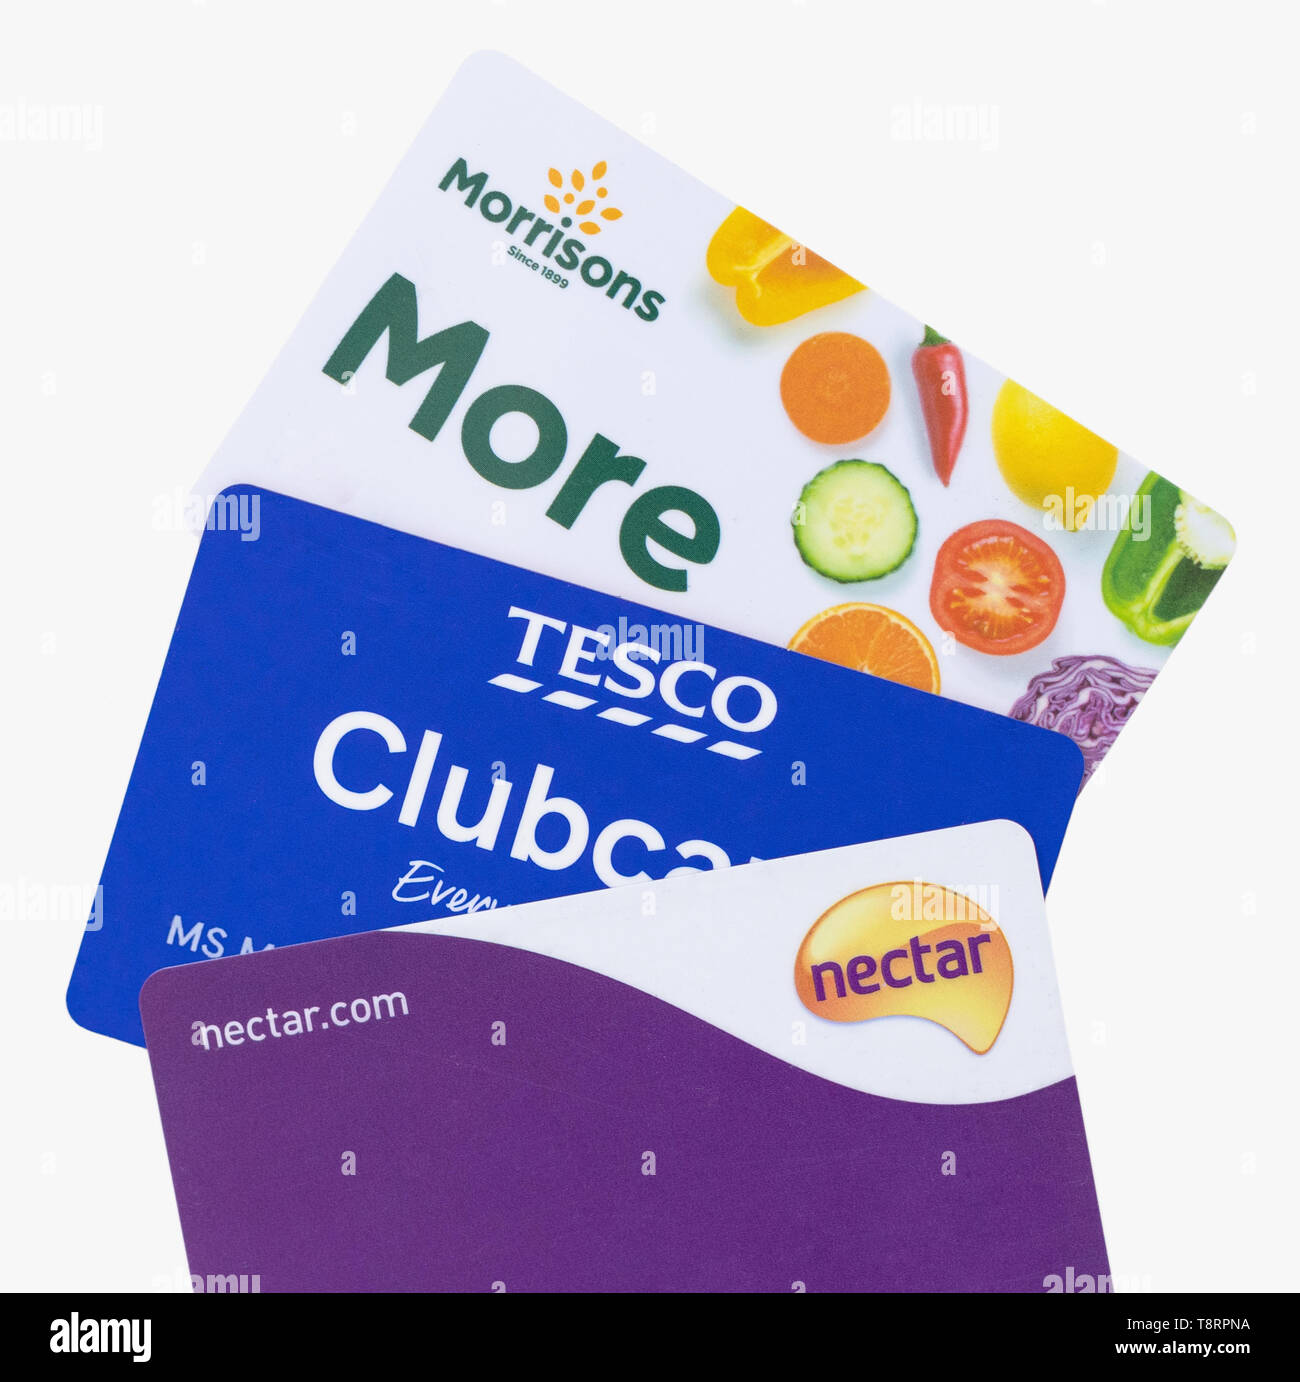 London, UK - 14th May 2019 - Sainsburys Nectar card, Tesco clubcard and Morrisons More cards isolated on a white background - Stock Image